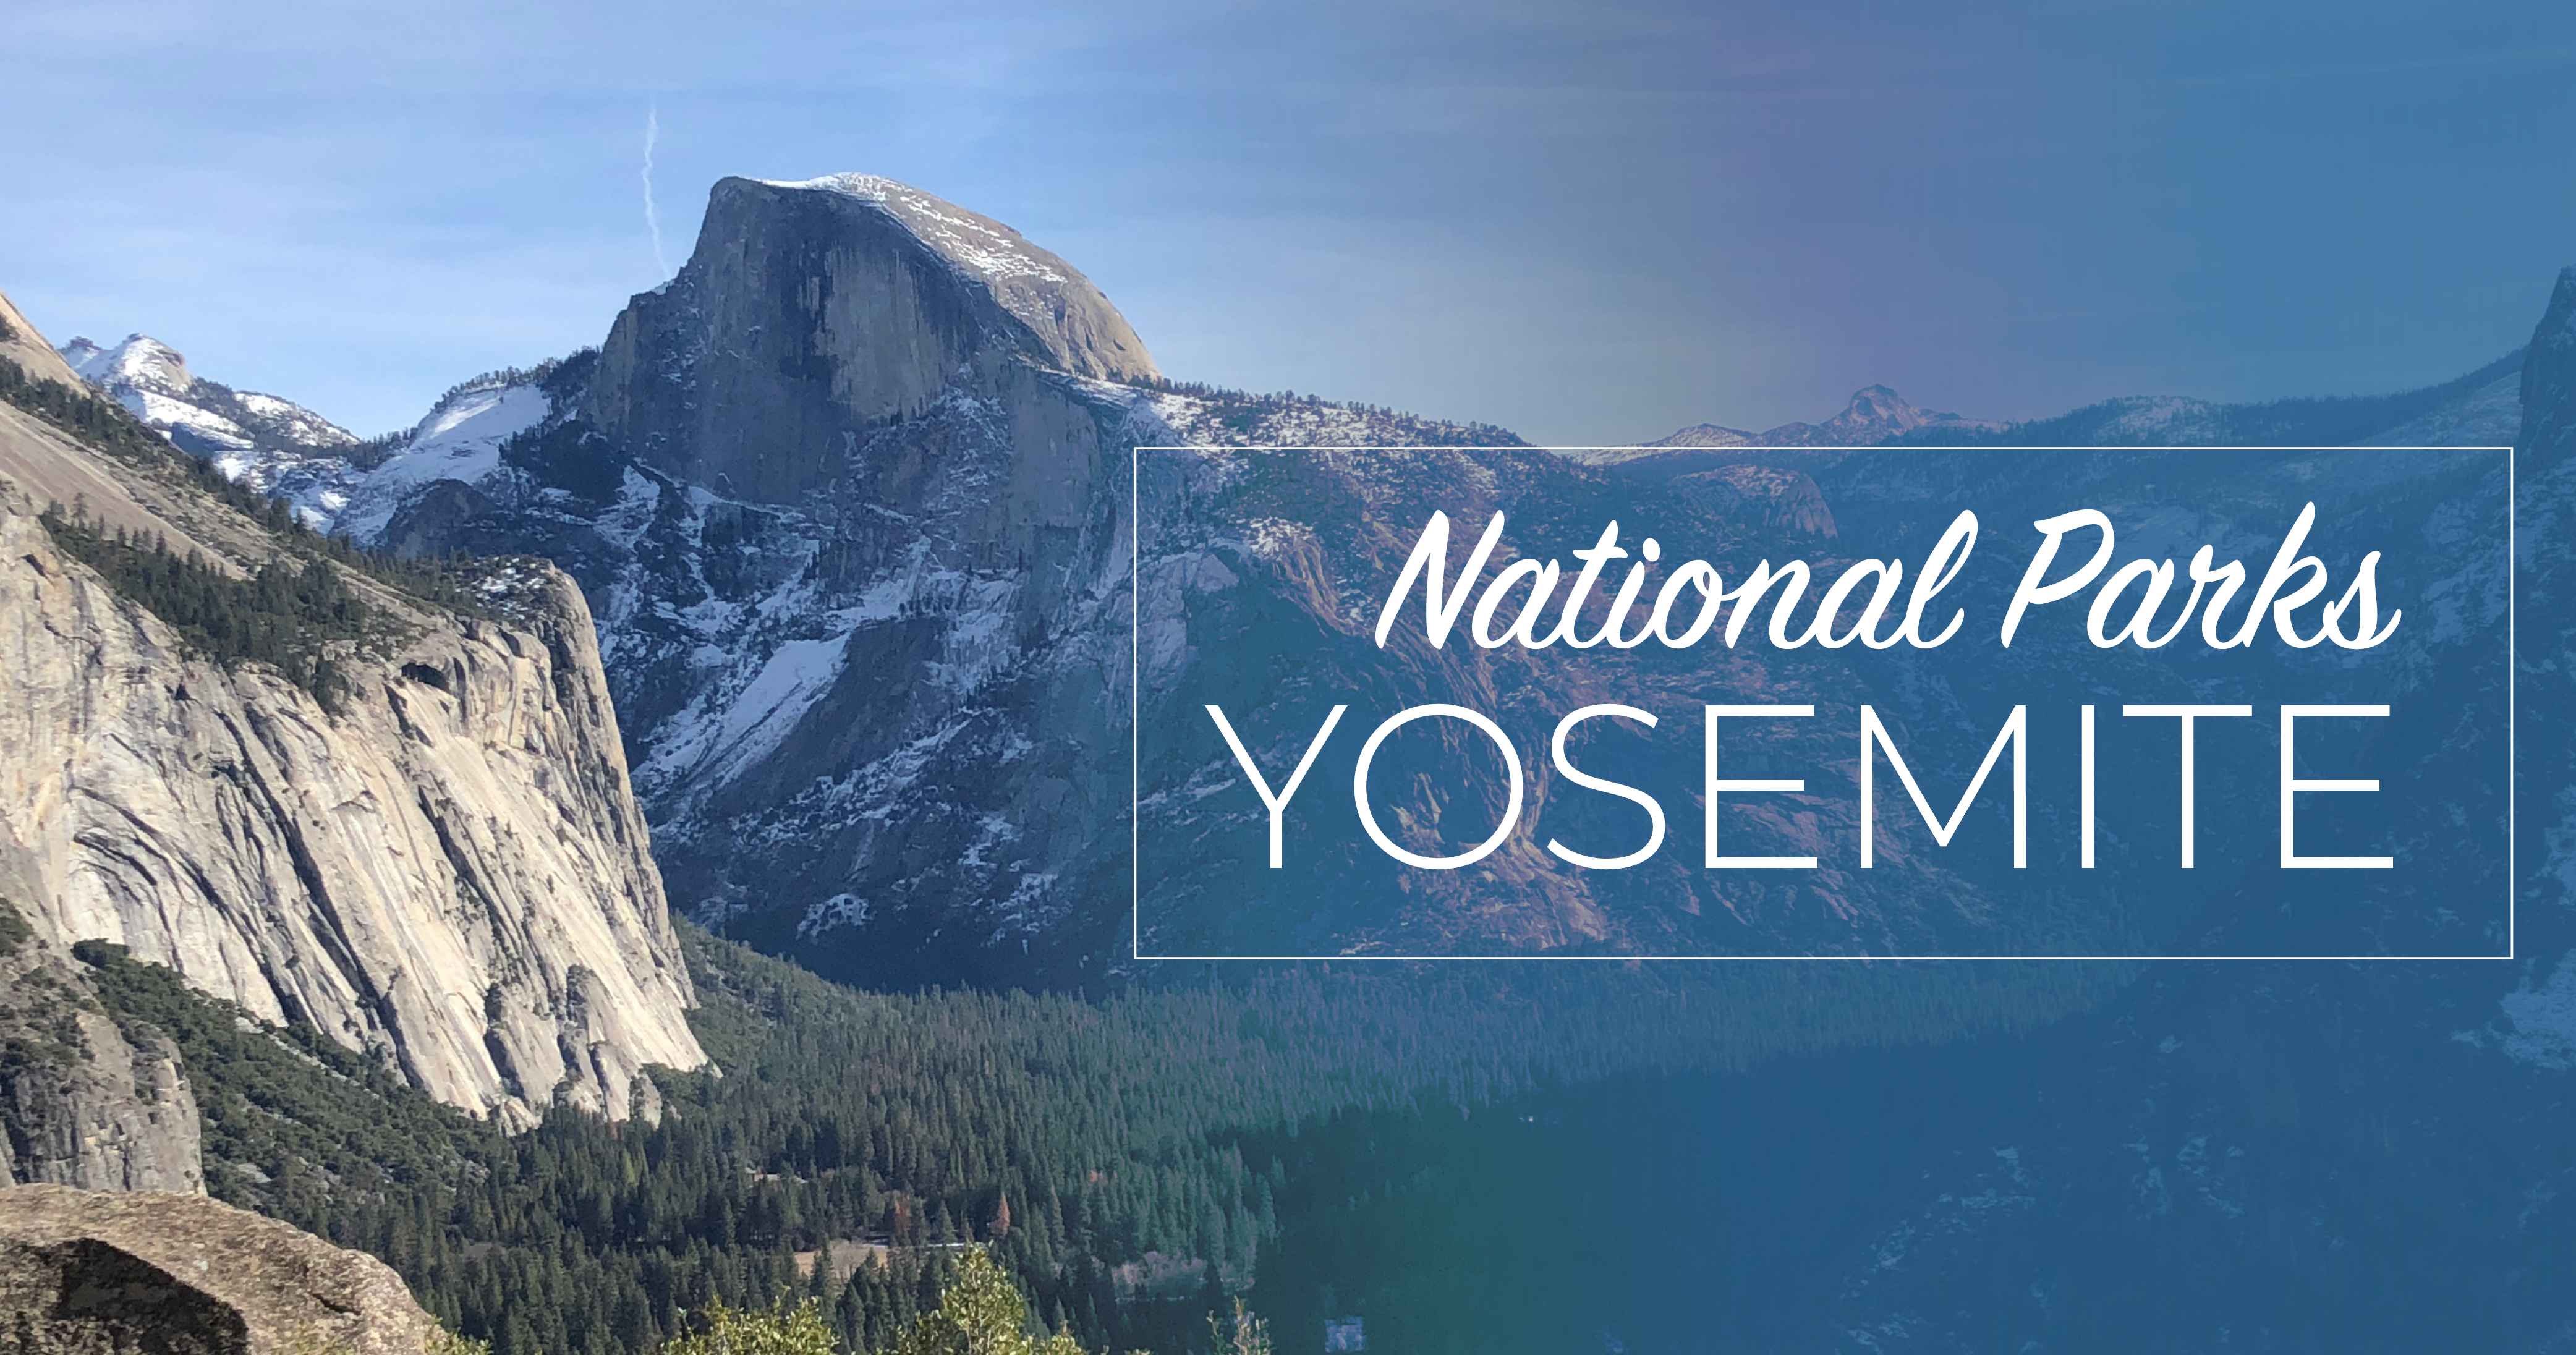 Yosemite National Park: 24 Hours in the Eternal Youth of Nature